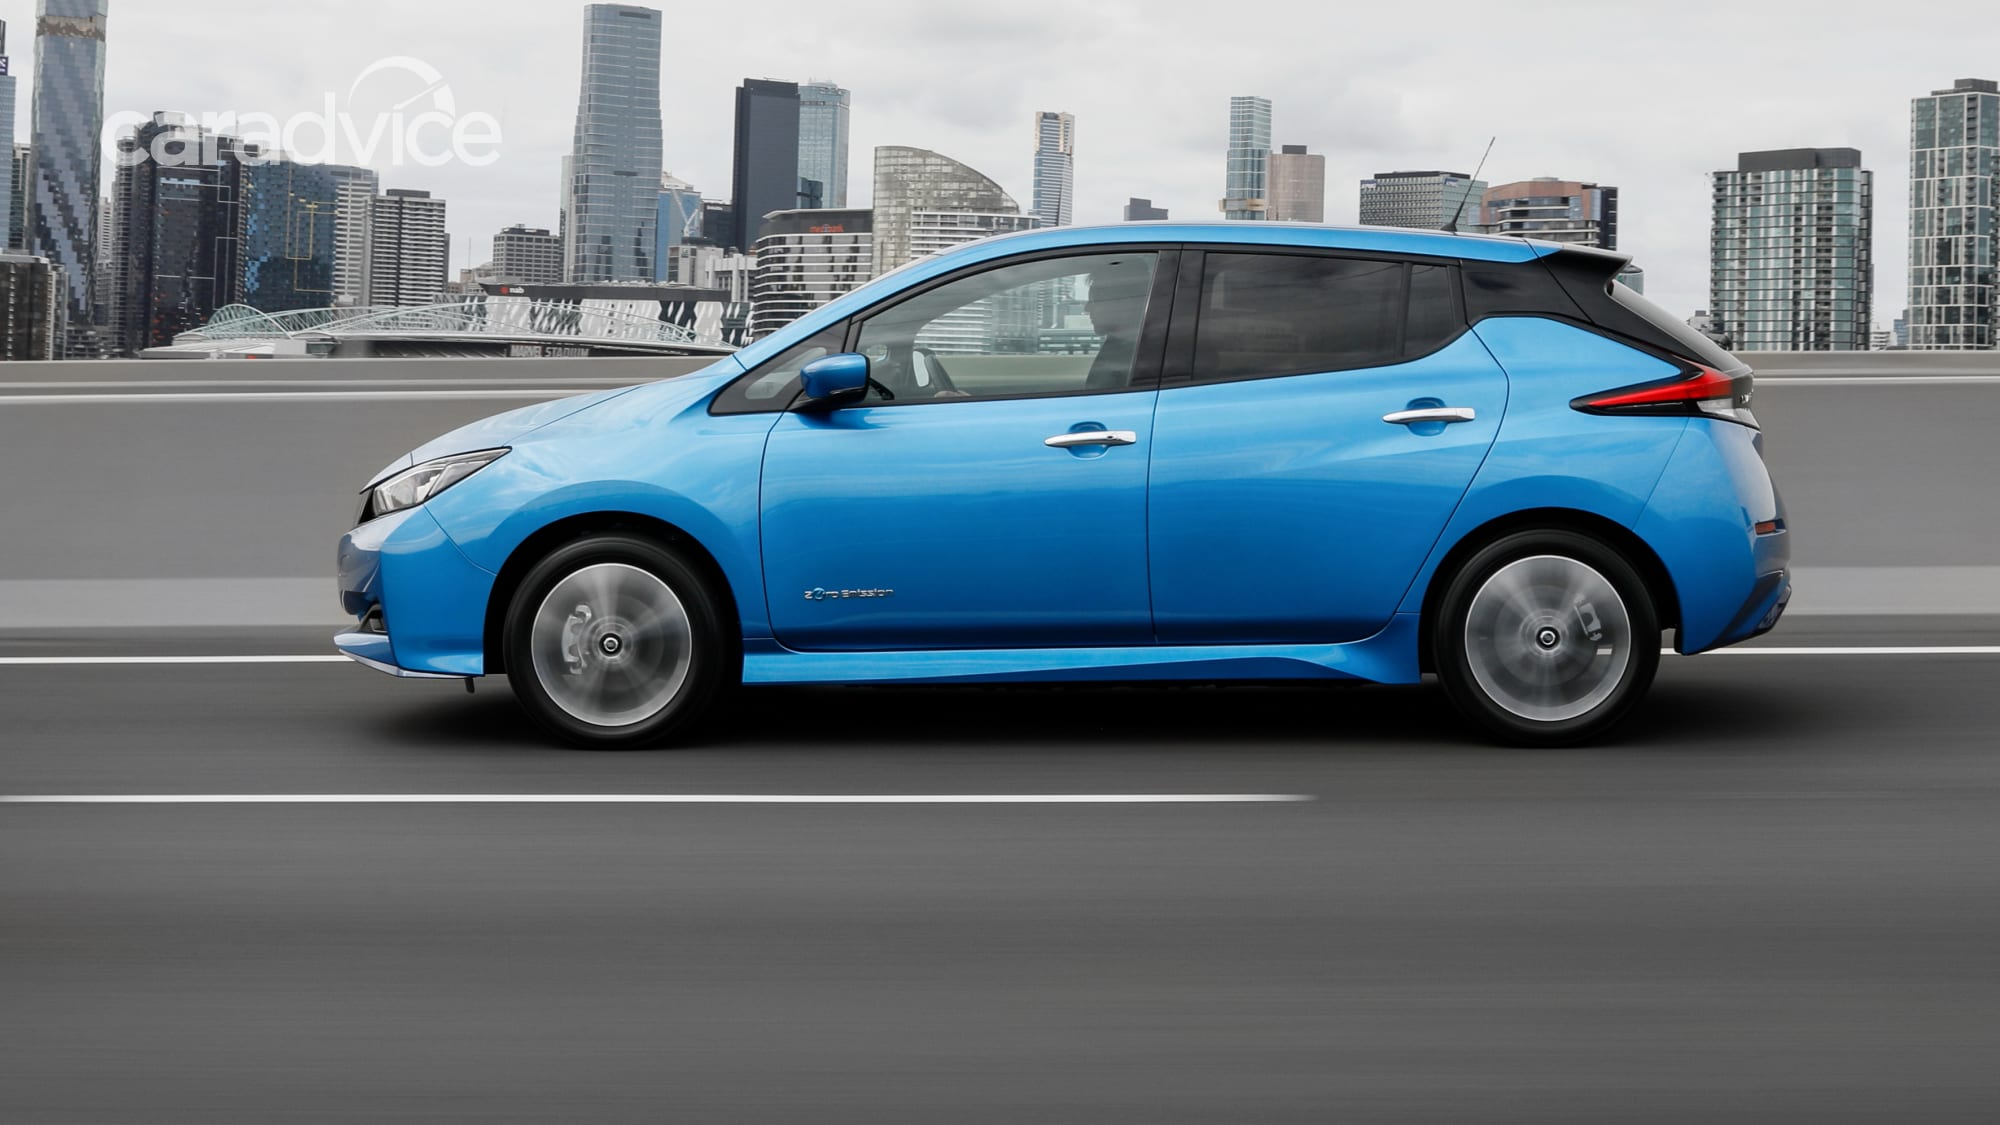 Victoria announces $3000 subsidy for electric vehicles, sets sales target - 2 of 2